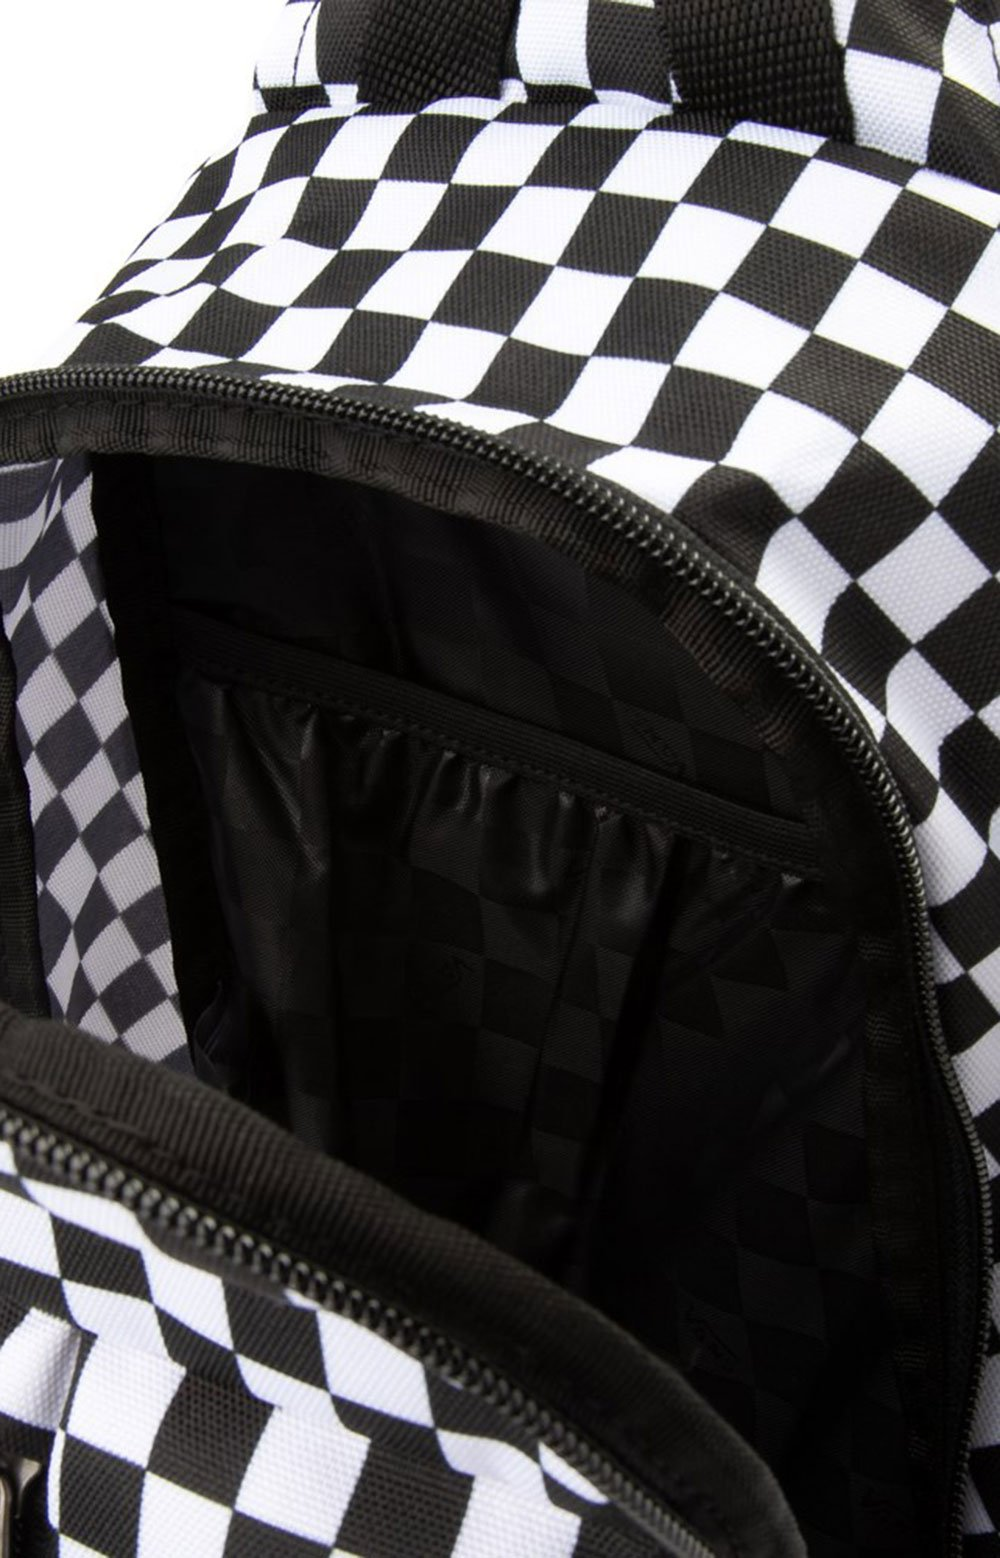 Warp Sling Bag - Black/White 4